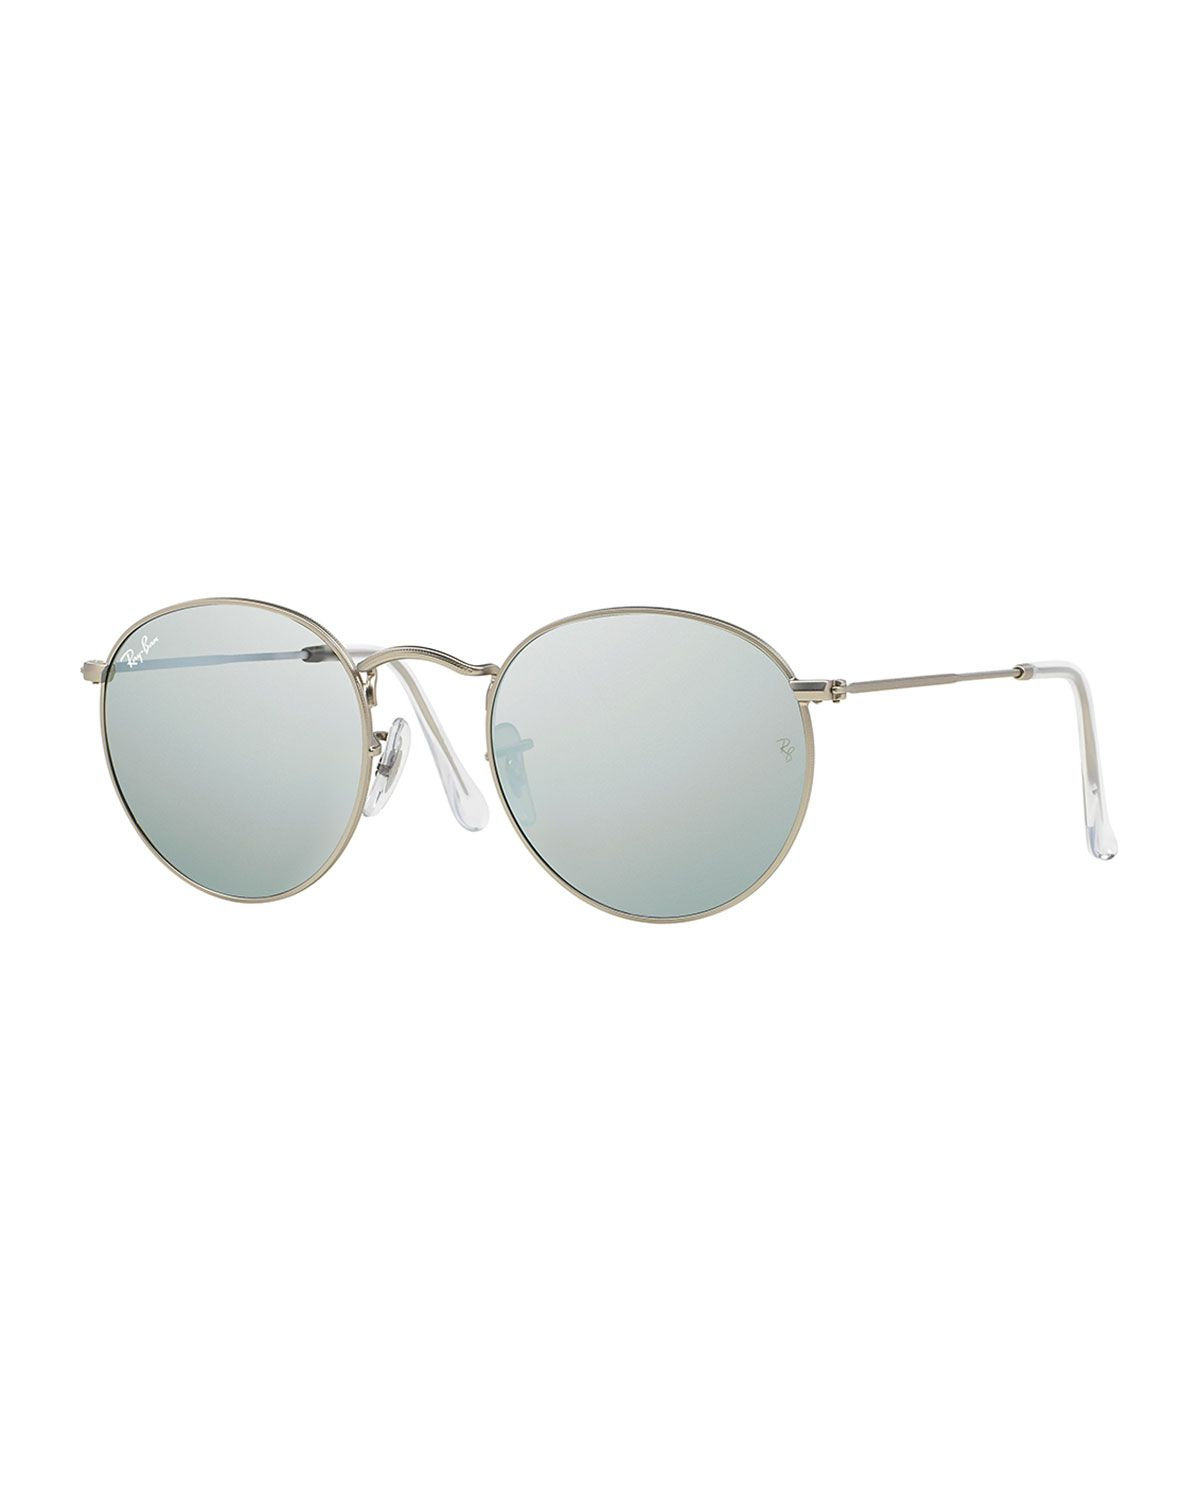 d7005332c Round Metal-Frame Sunglasses with Silver Mirror Lens - Ray-Ban ...